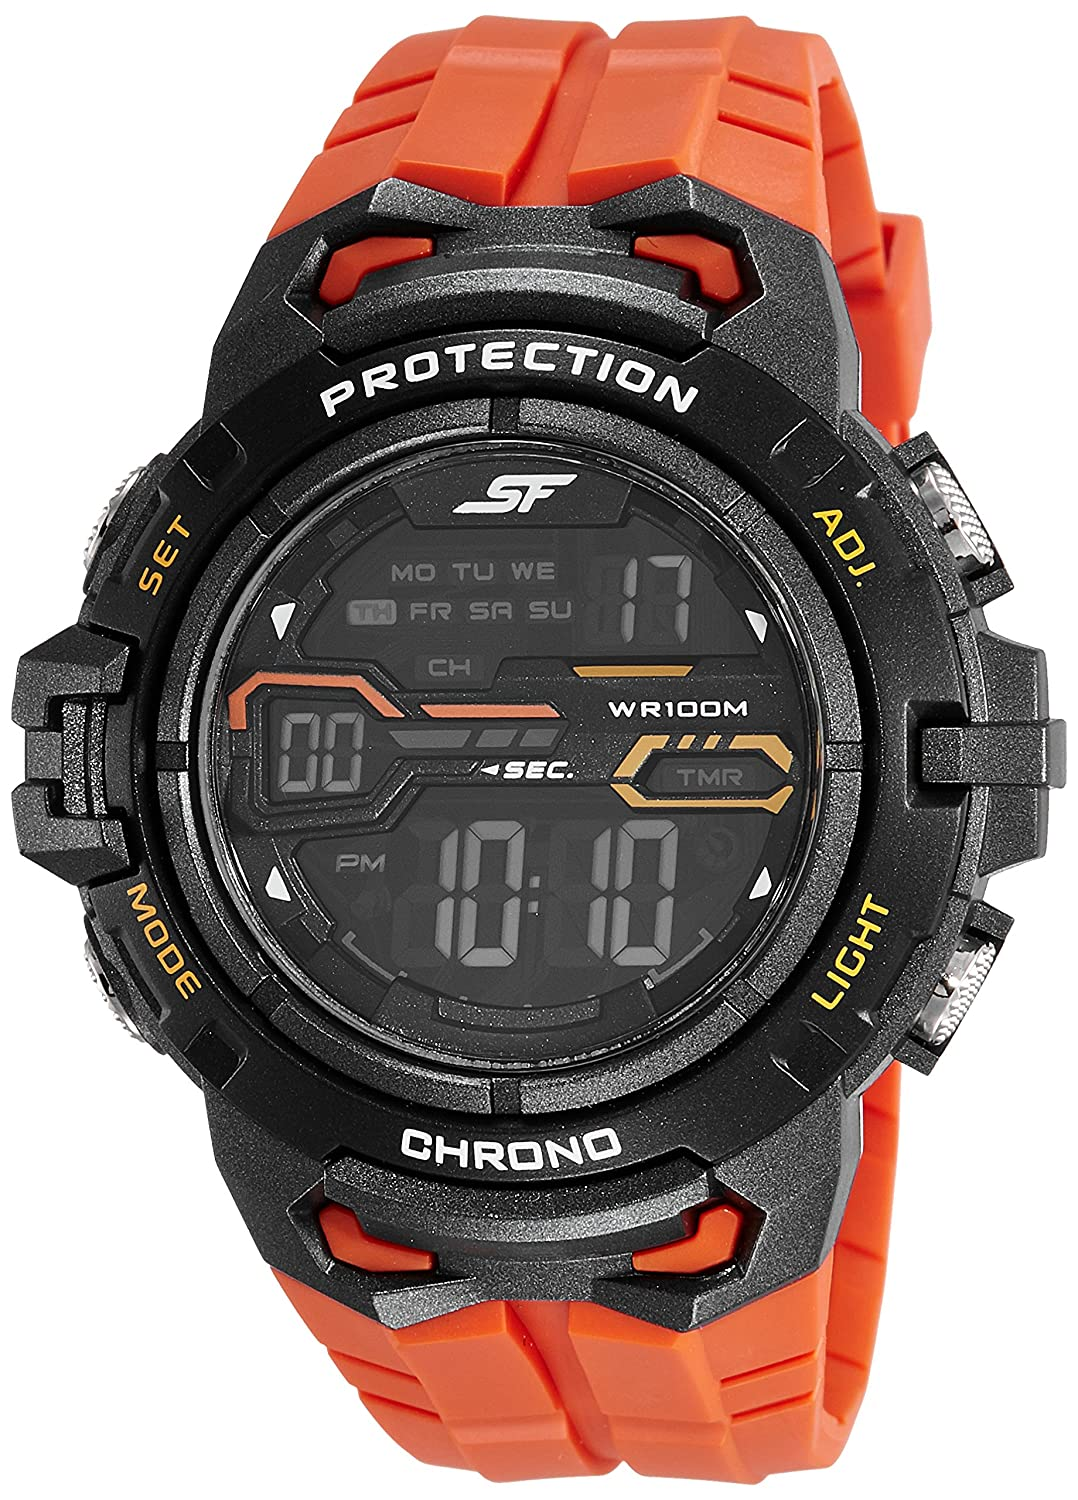 Sonata Fibre Best Digital Watches under 2000 that are Worth Buying in India